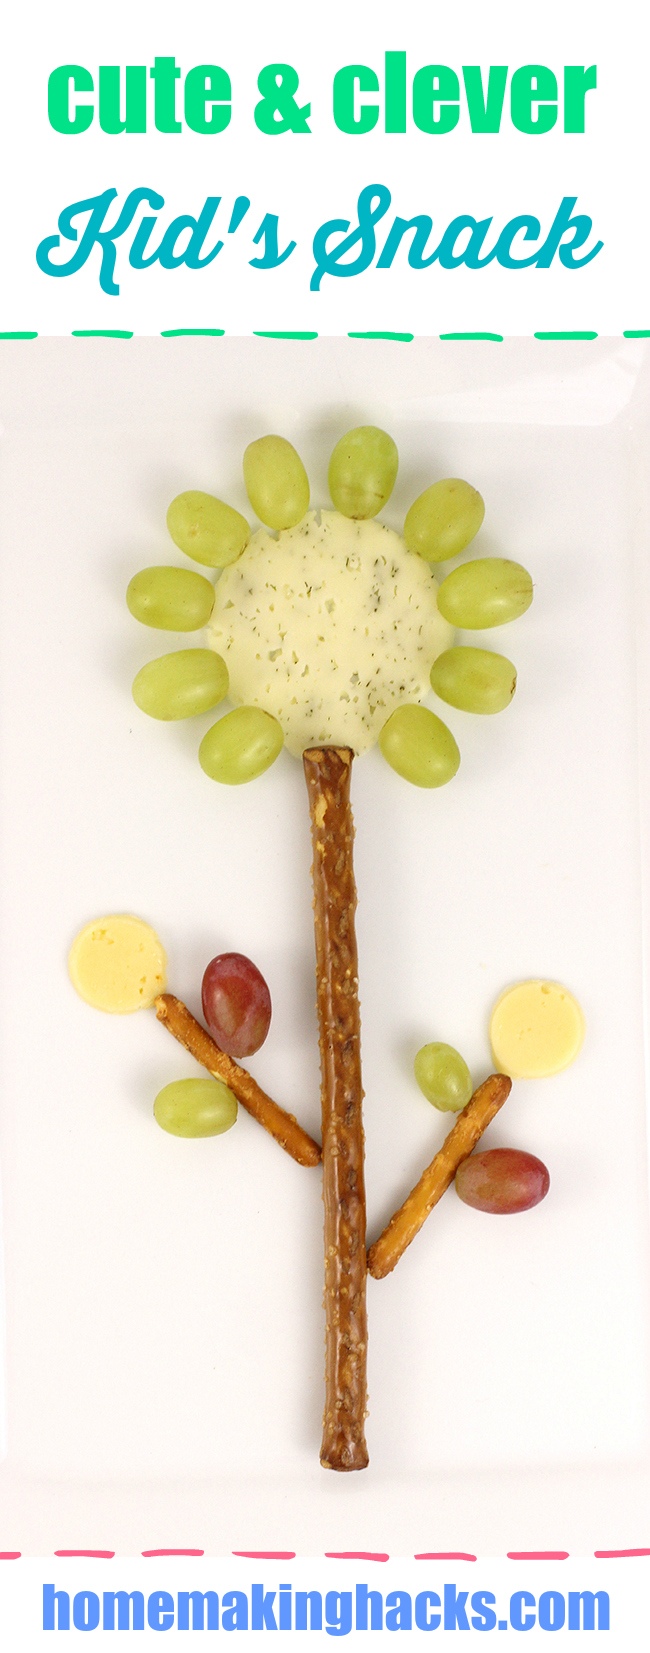 Picky kids? Keep them engaged by getting a little creative with their snacks. Endless ideas with simple ingredients.